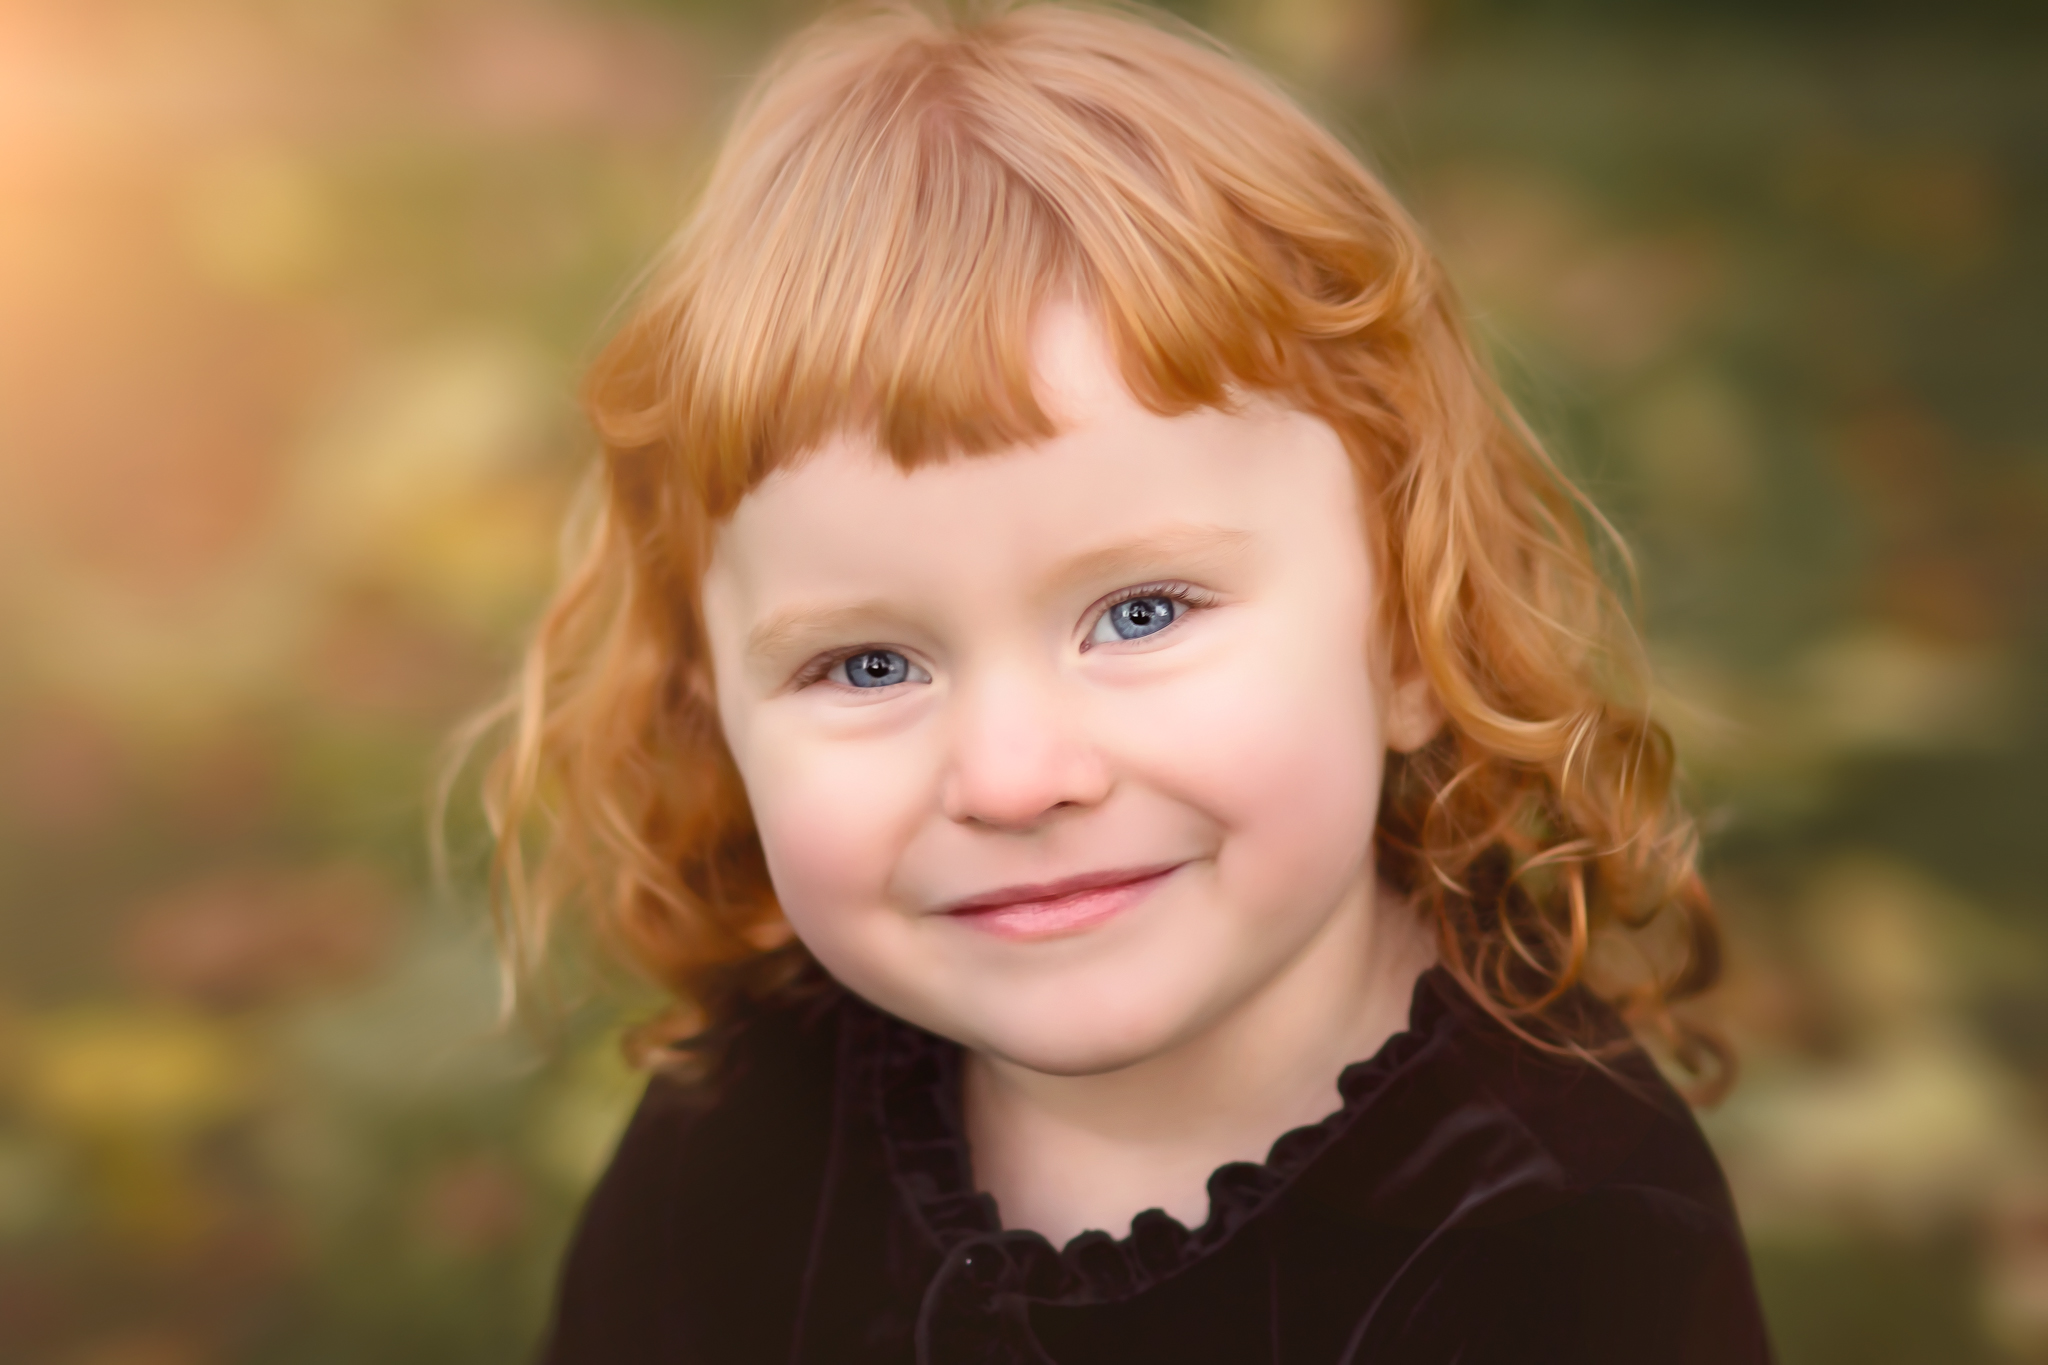 red head girl smiling